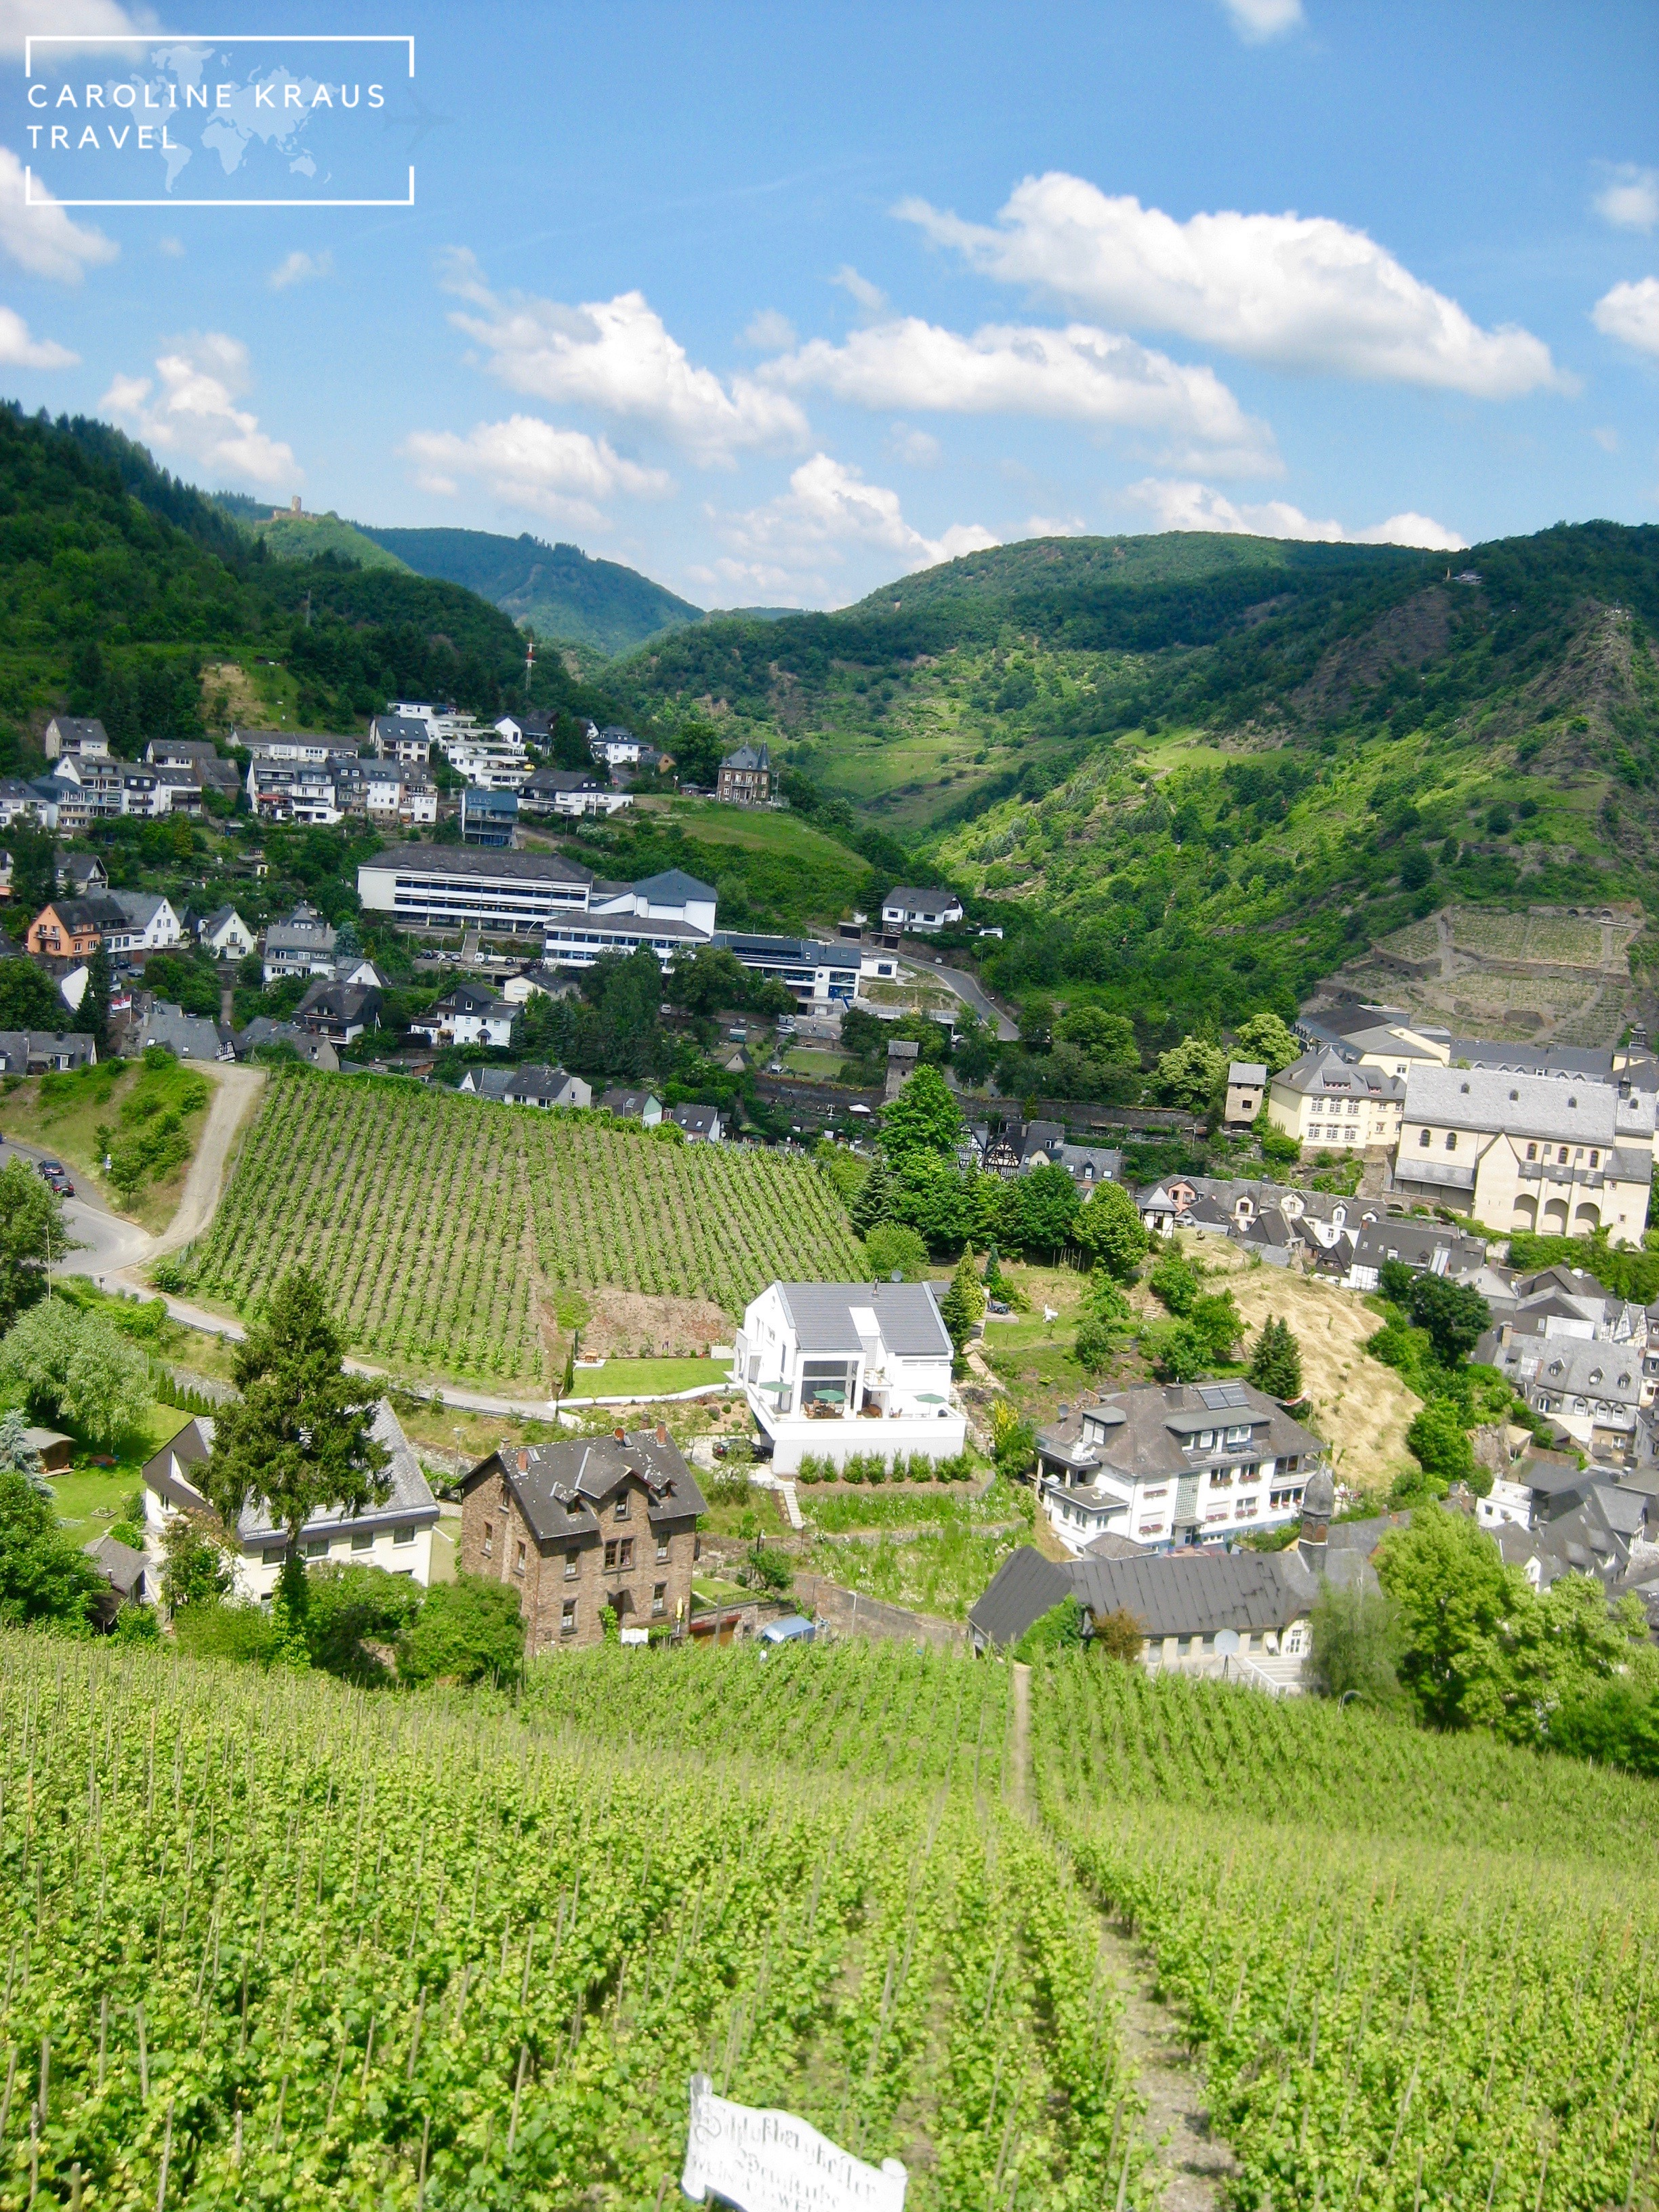 Vineyards in the Mosel Valley, Germany